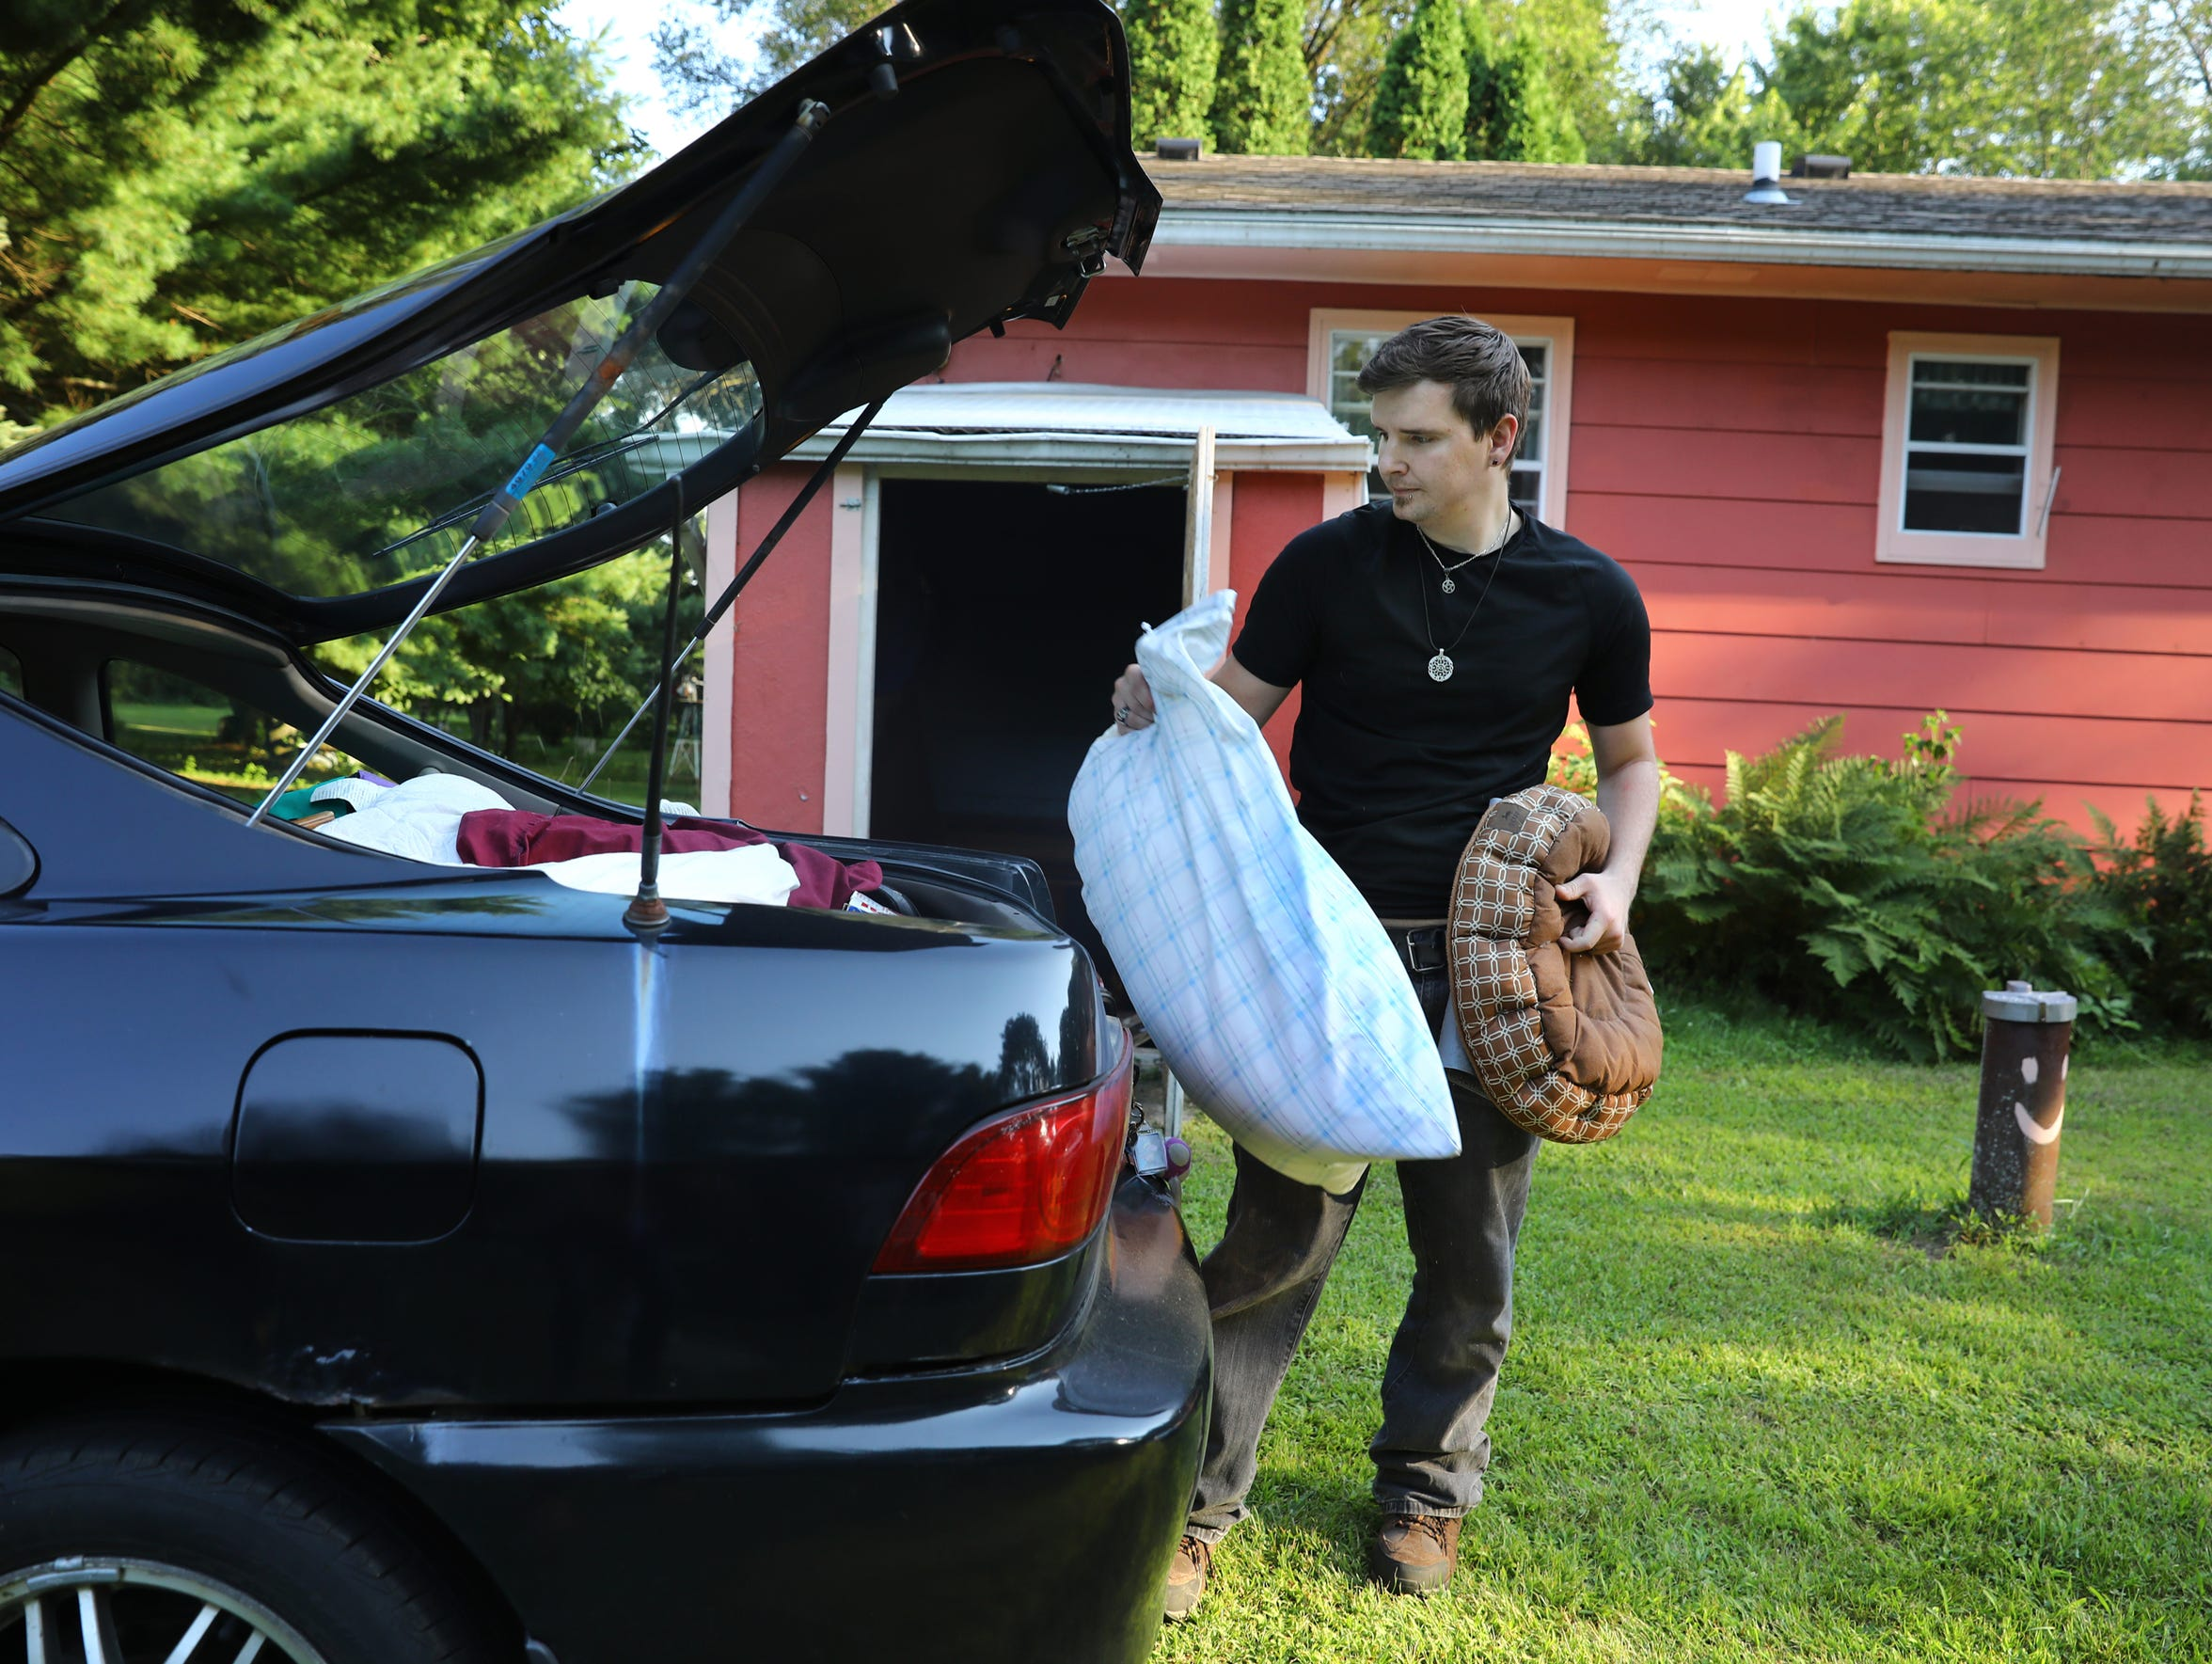 Cody McCormick, 29, packs belongings into his fiancé